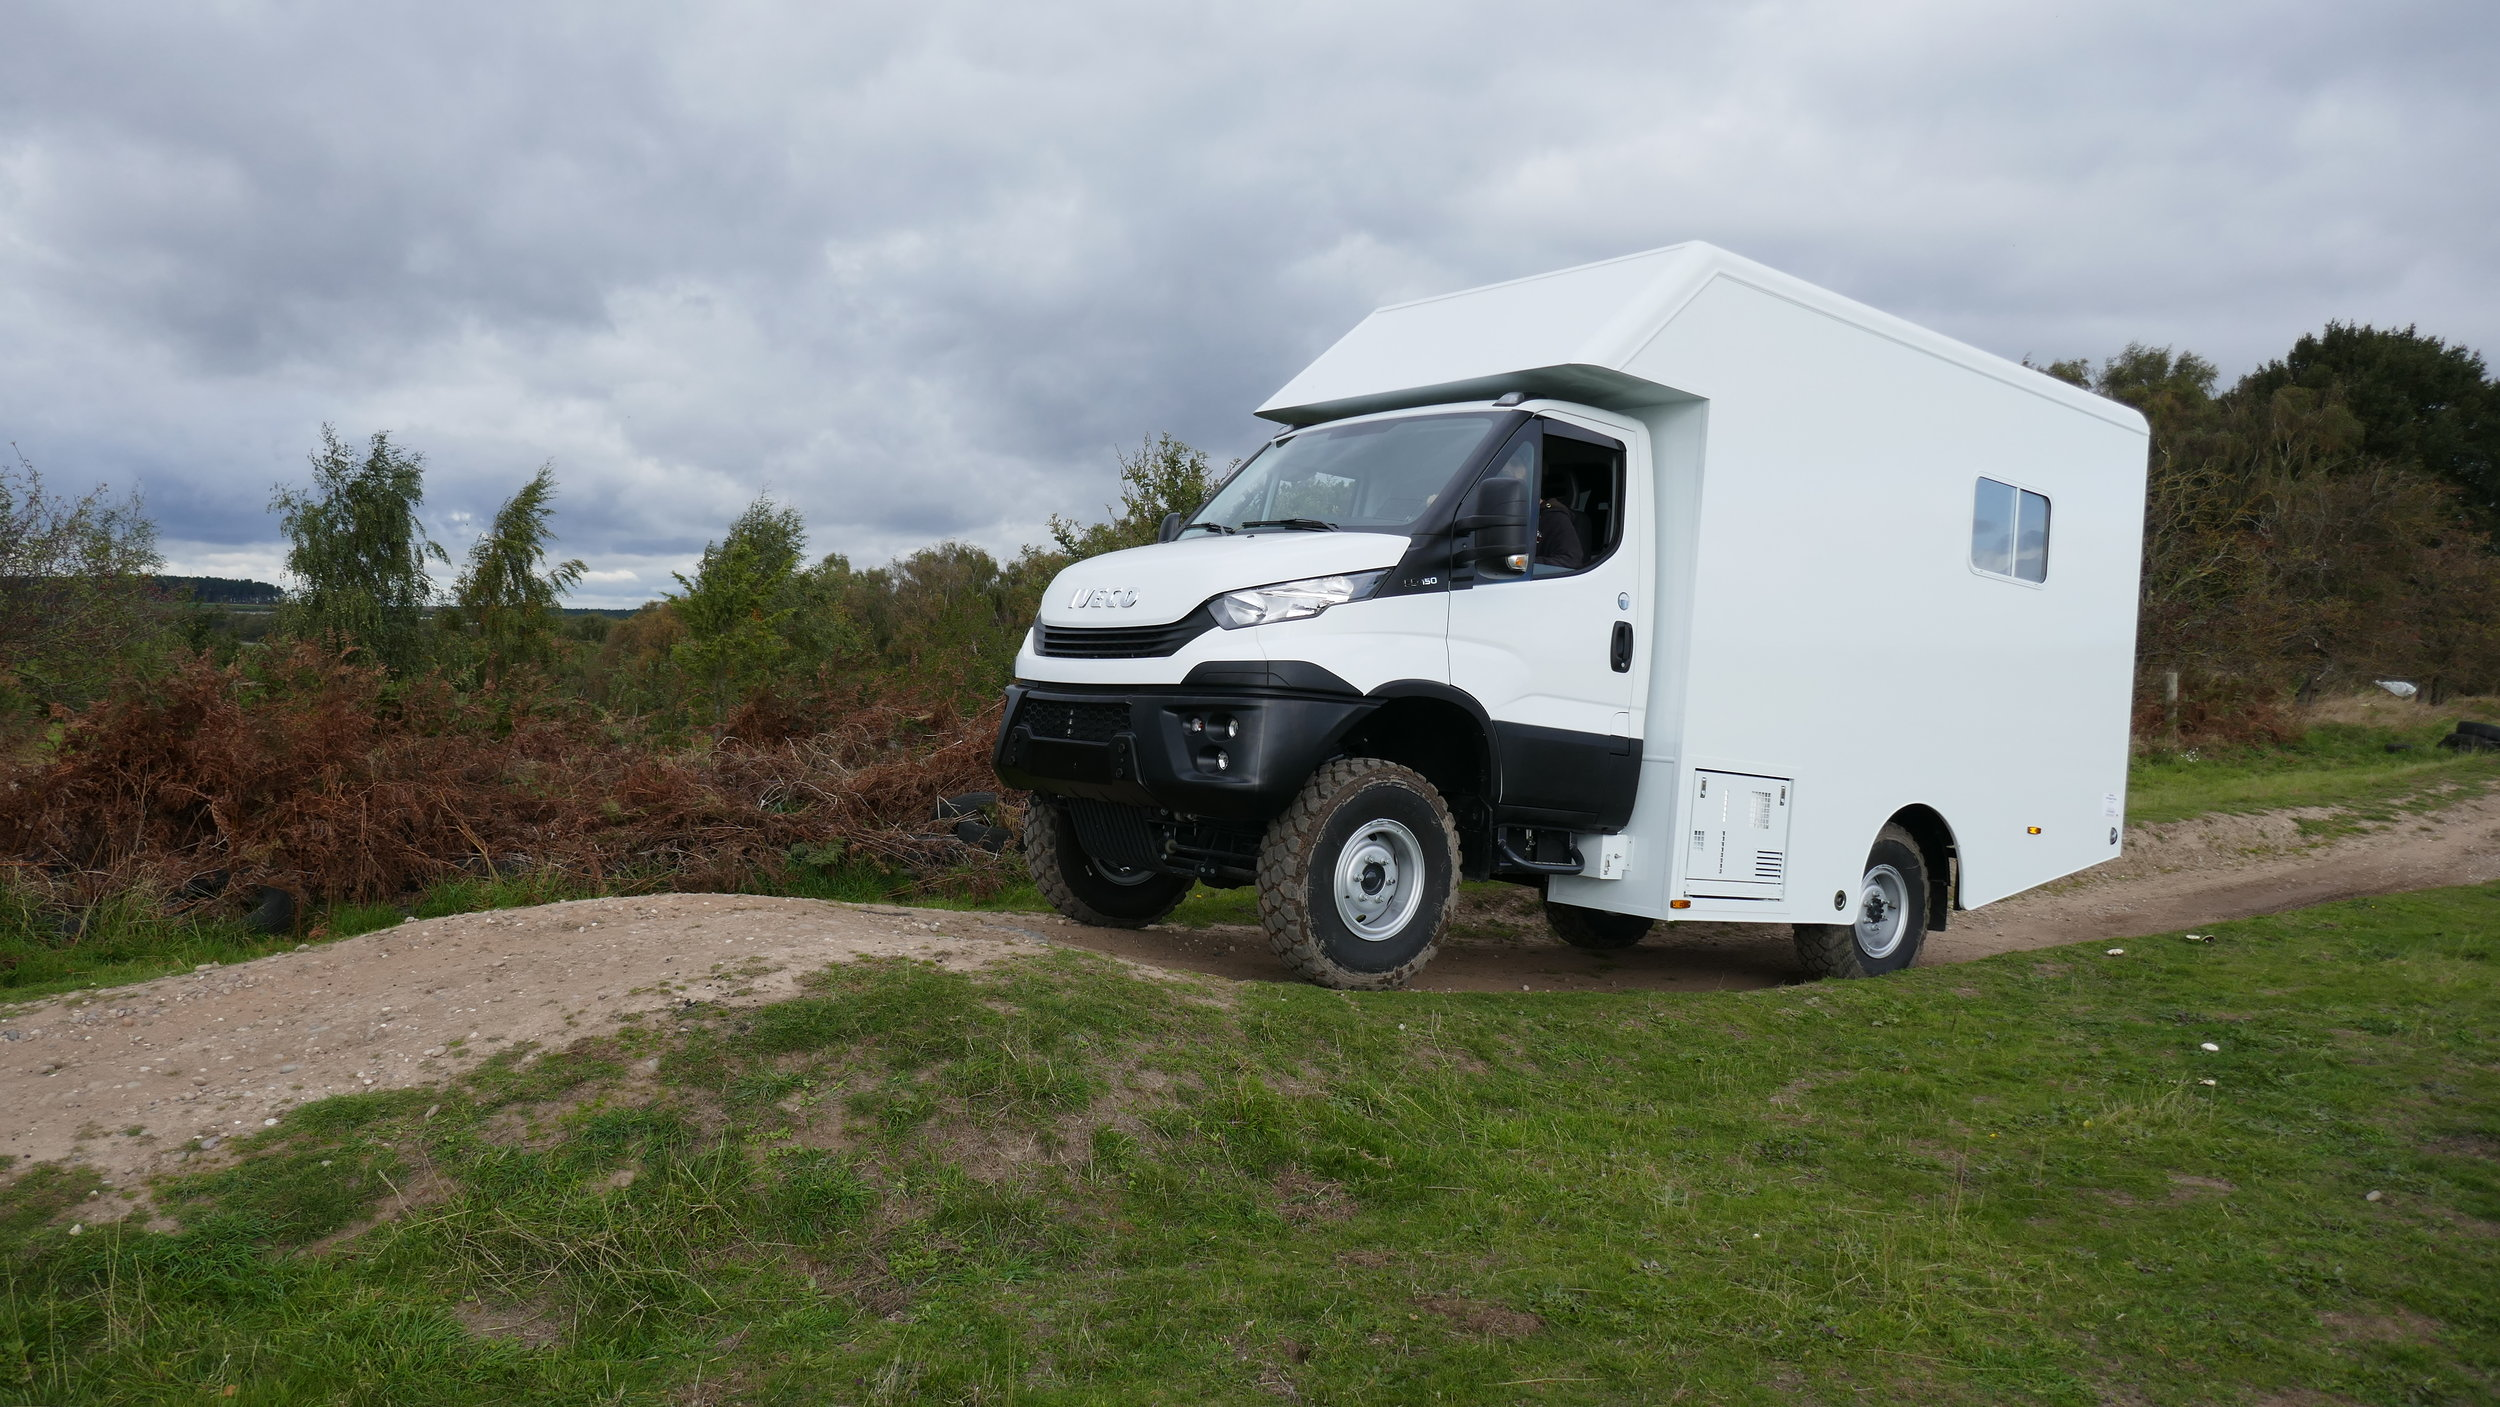 Iveco-daily-4x4-sherwood-truck-and-van 2.jpeg